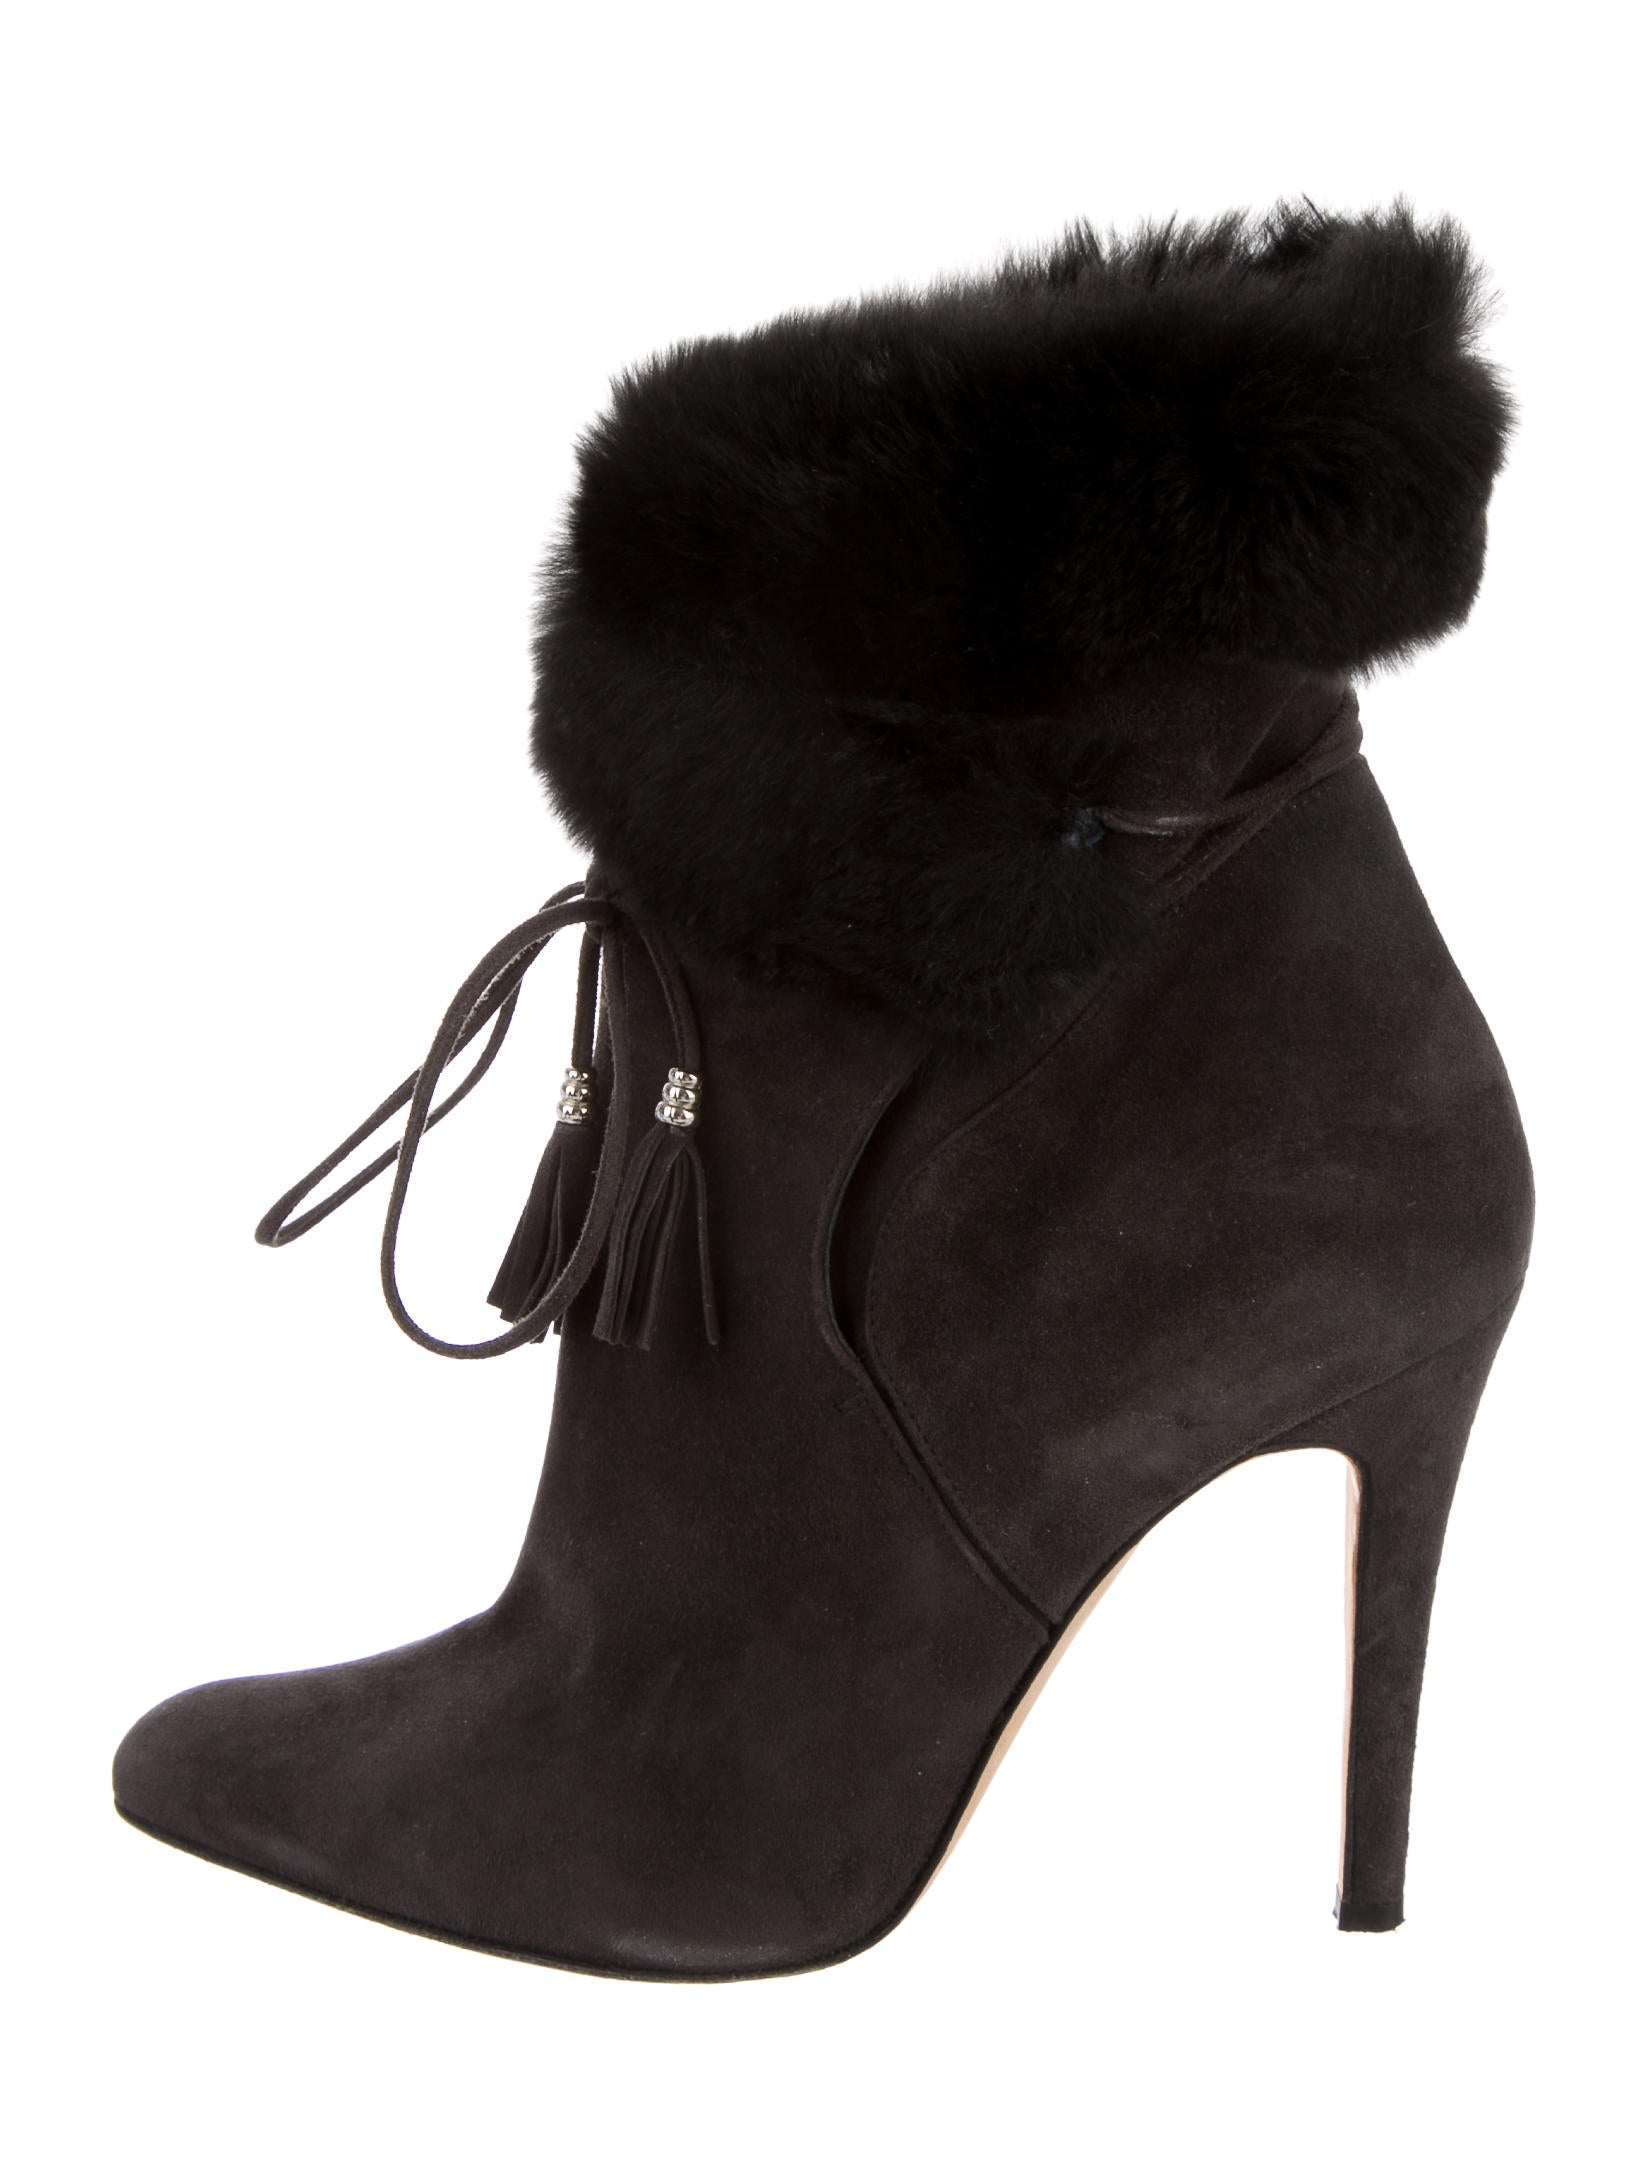 order cheap online discount recommend Oscar de la Renta Suede Semi Pointed-Toe Booties outlet low price 0YwUAlUij8